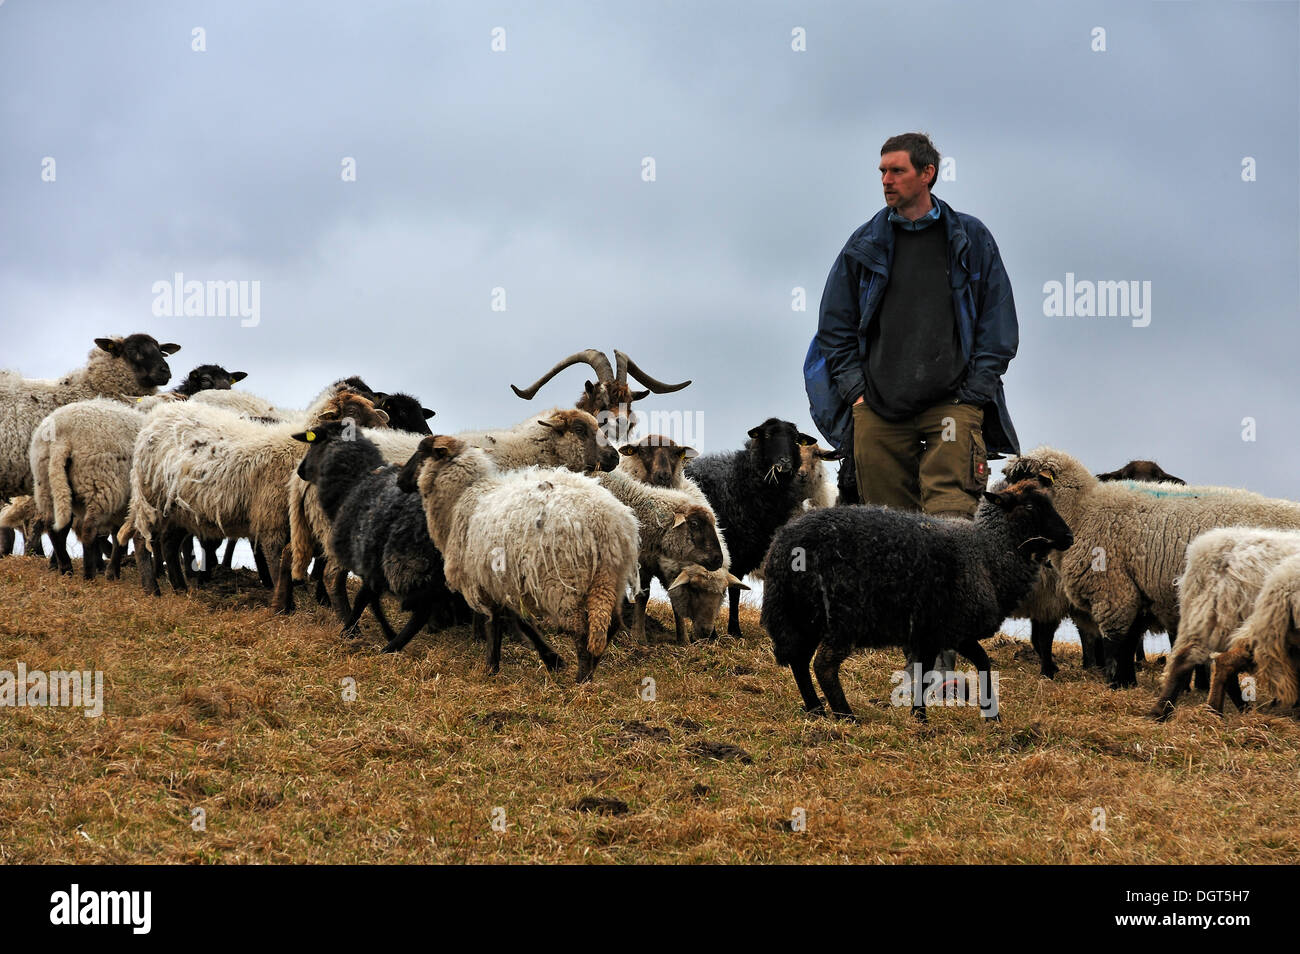 Young farmer looking after his sheep, one goat at centre, Kalkberg, Nesow, Mecklenburg-Western Pomerania, Germany - Stock Image